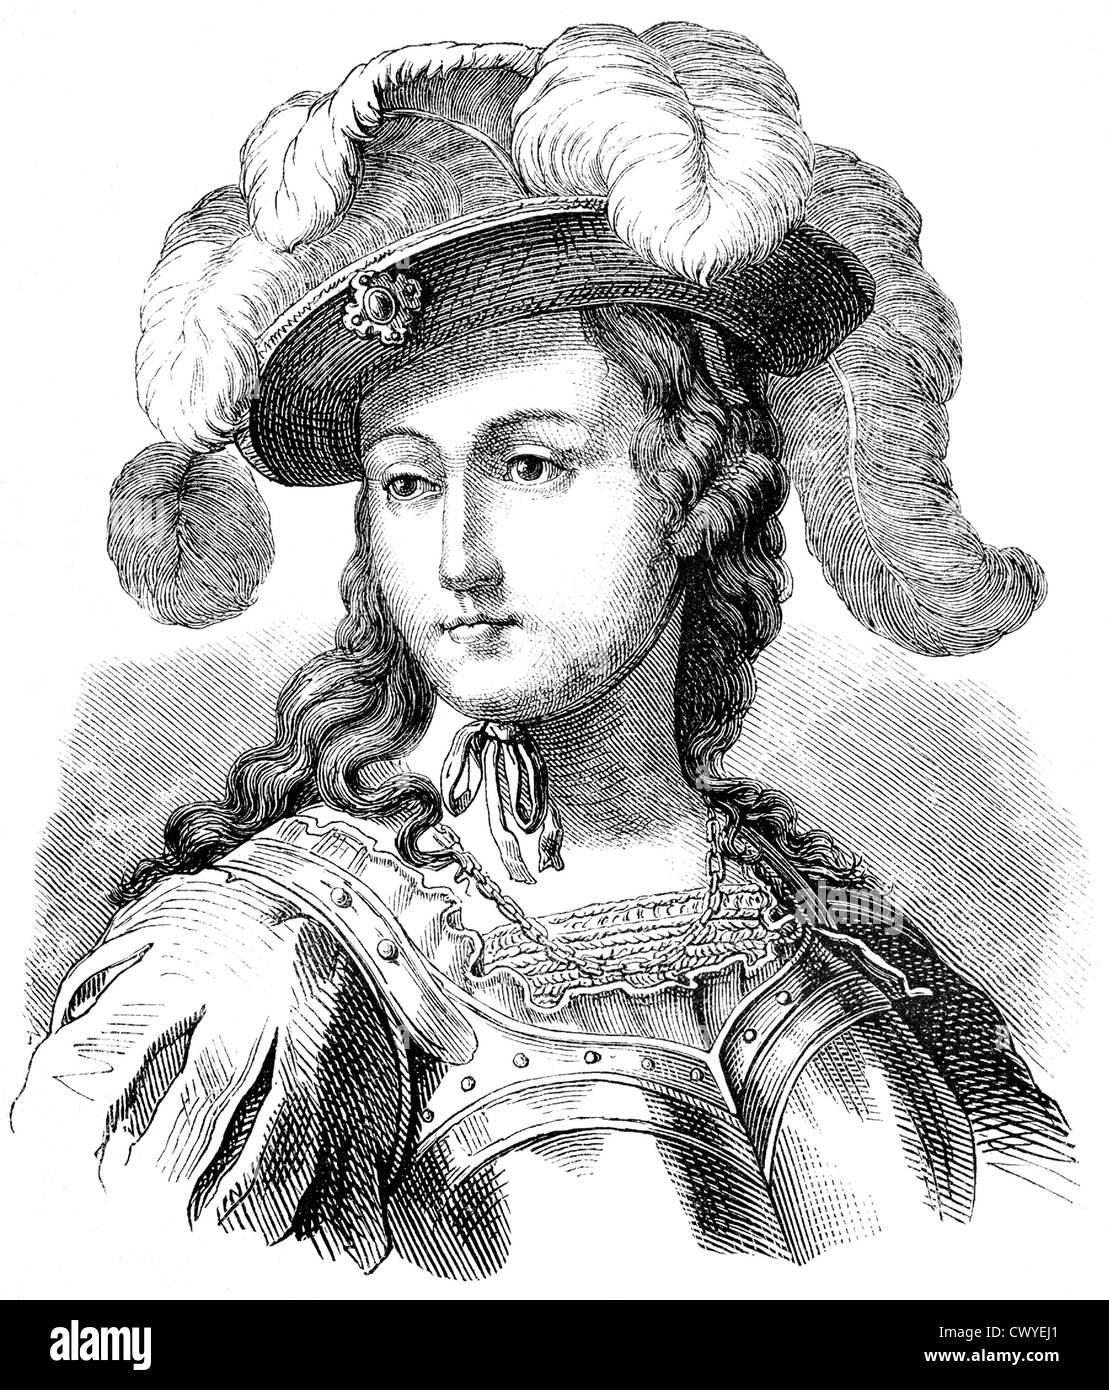 an analysis of the character of joan of arc a french heroine The fact is that joan of arc is part of that roman national 3 with the role of the key figure during the hundred years' war (1356-1452) 3 pierre nora's formula, french historian, director of the gigantic work les lieux de mémoire (published.